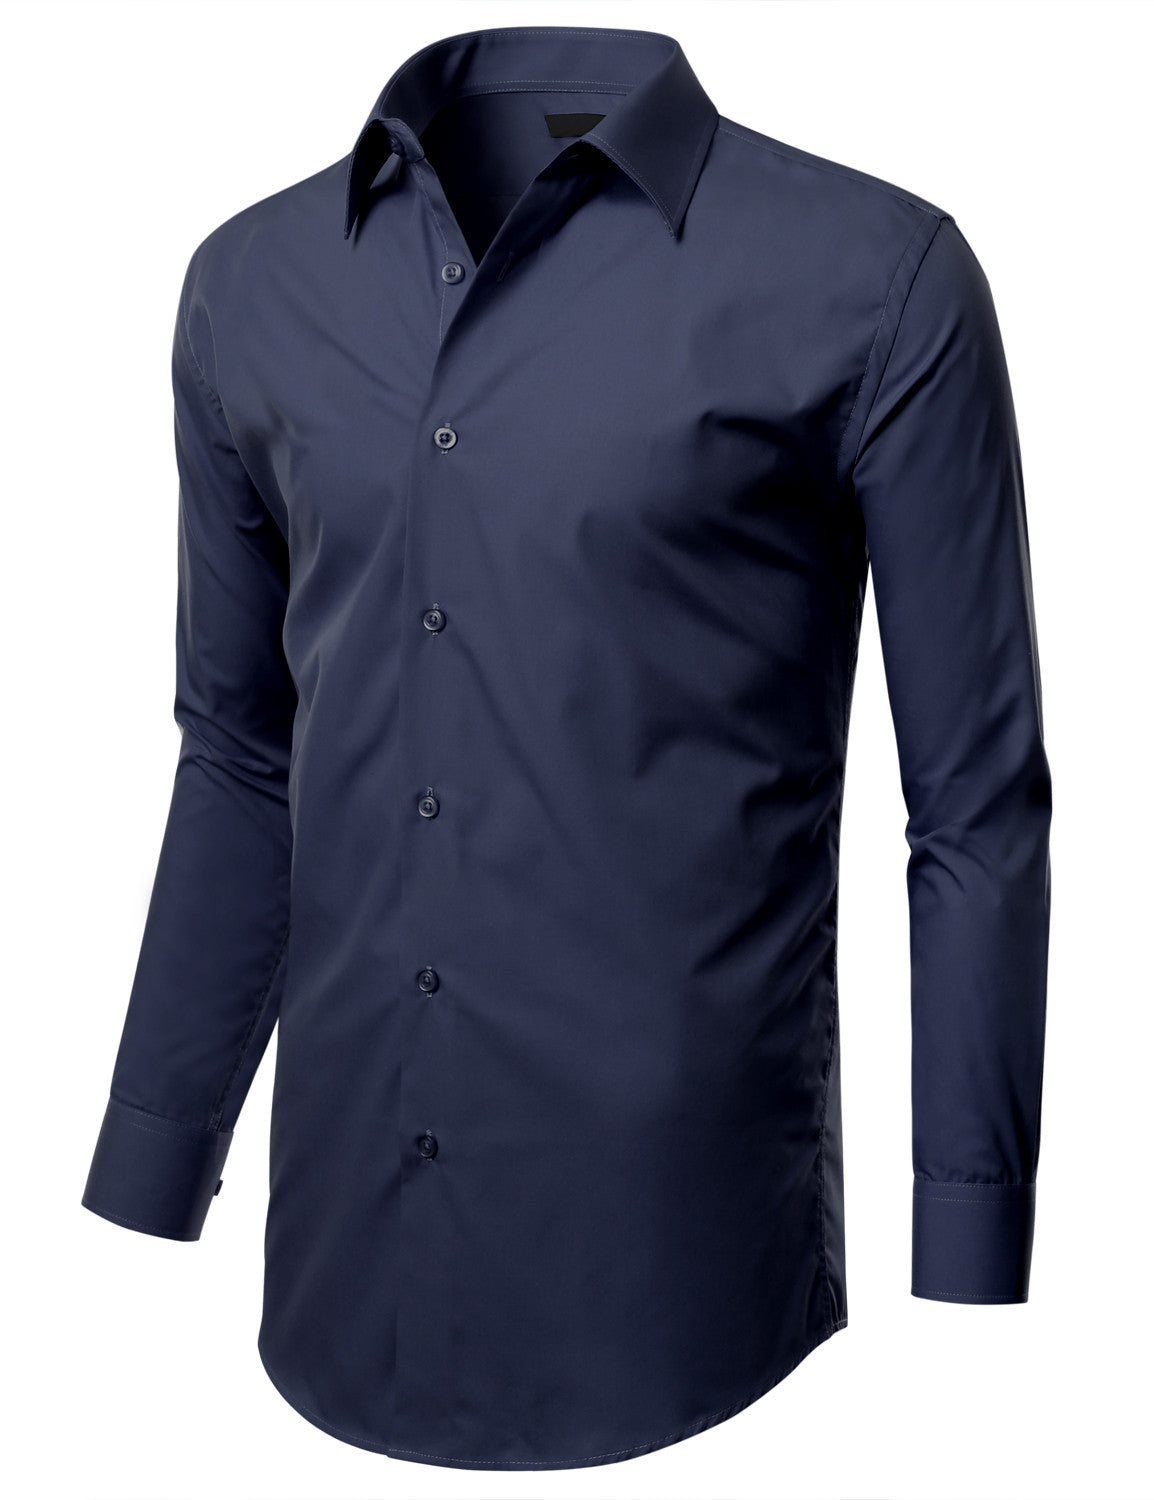 TC09NAVY Navy Slim Fit Dress Shirt w/ Reversible Cuff (Big & Tall Available)- MONDAYSUIT